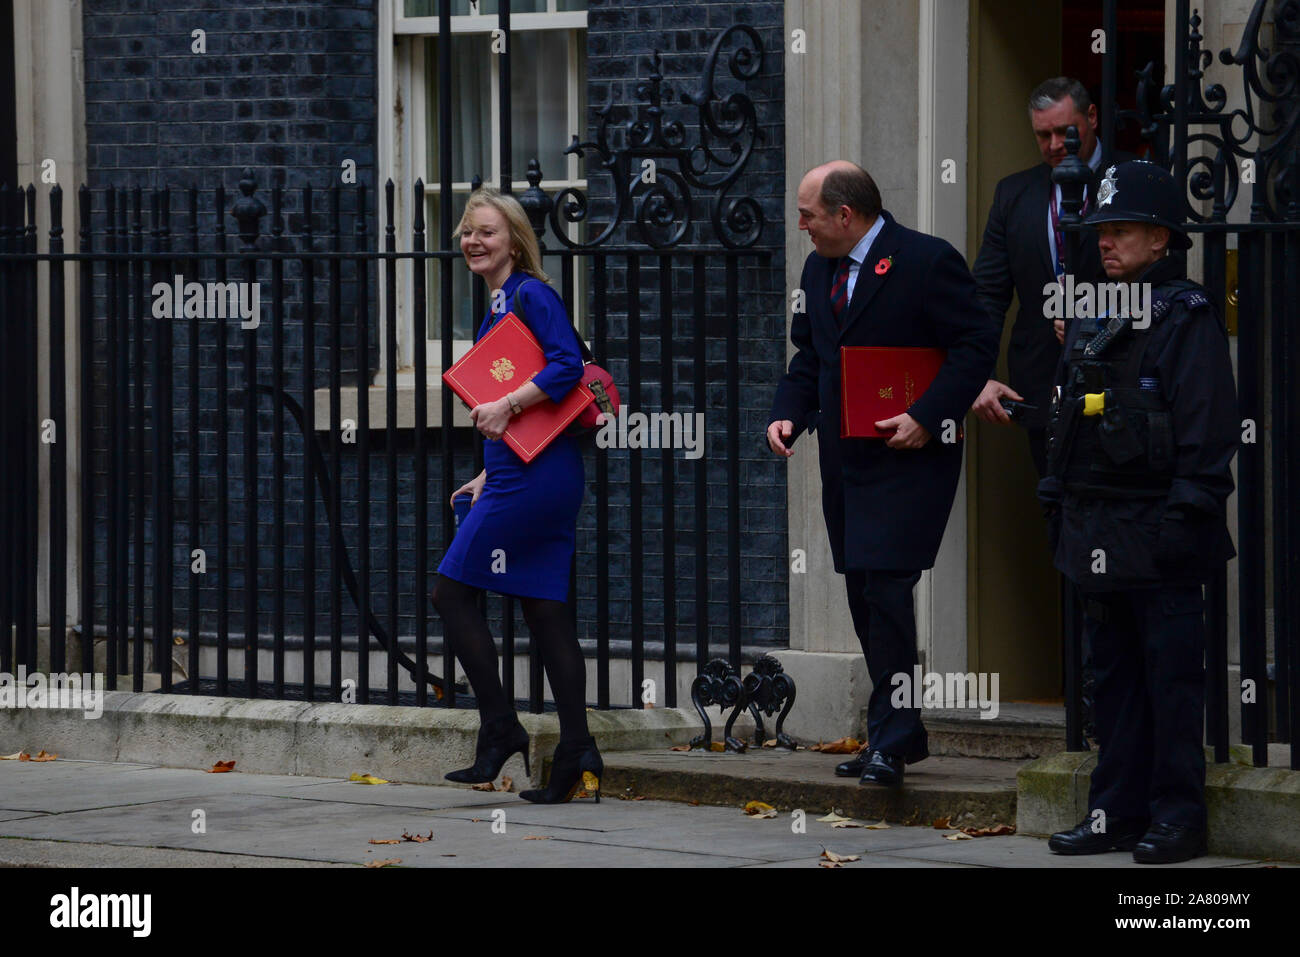 London, UK. 5th November 2019. Elizabeth Truss, International Trade Secretary leaving Downing Street after a Cabinet Meeting. Claire Doherty/Alamy Live News. Stock Photo